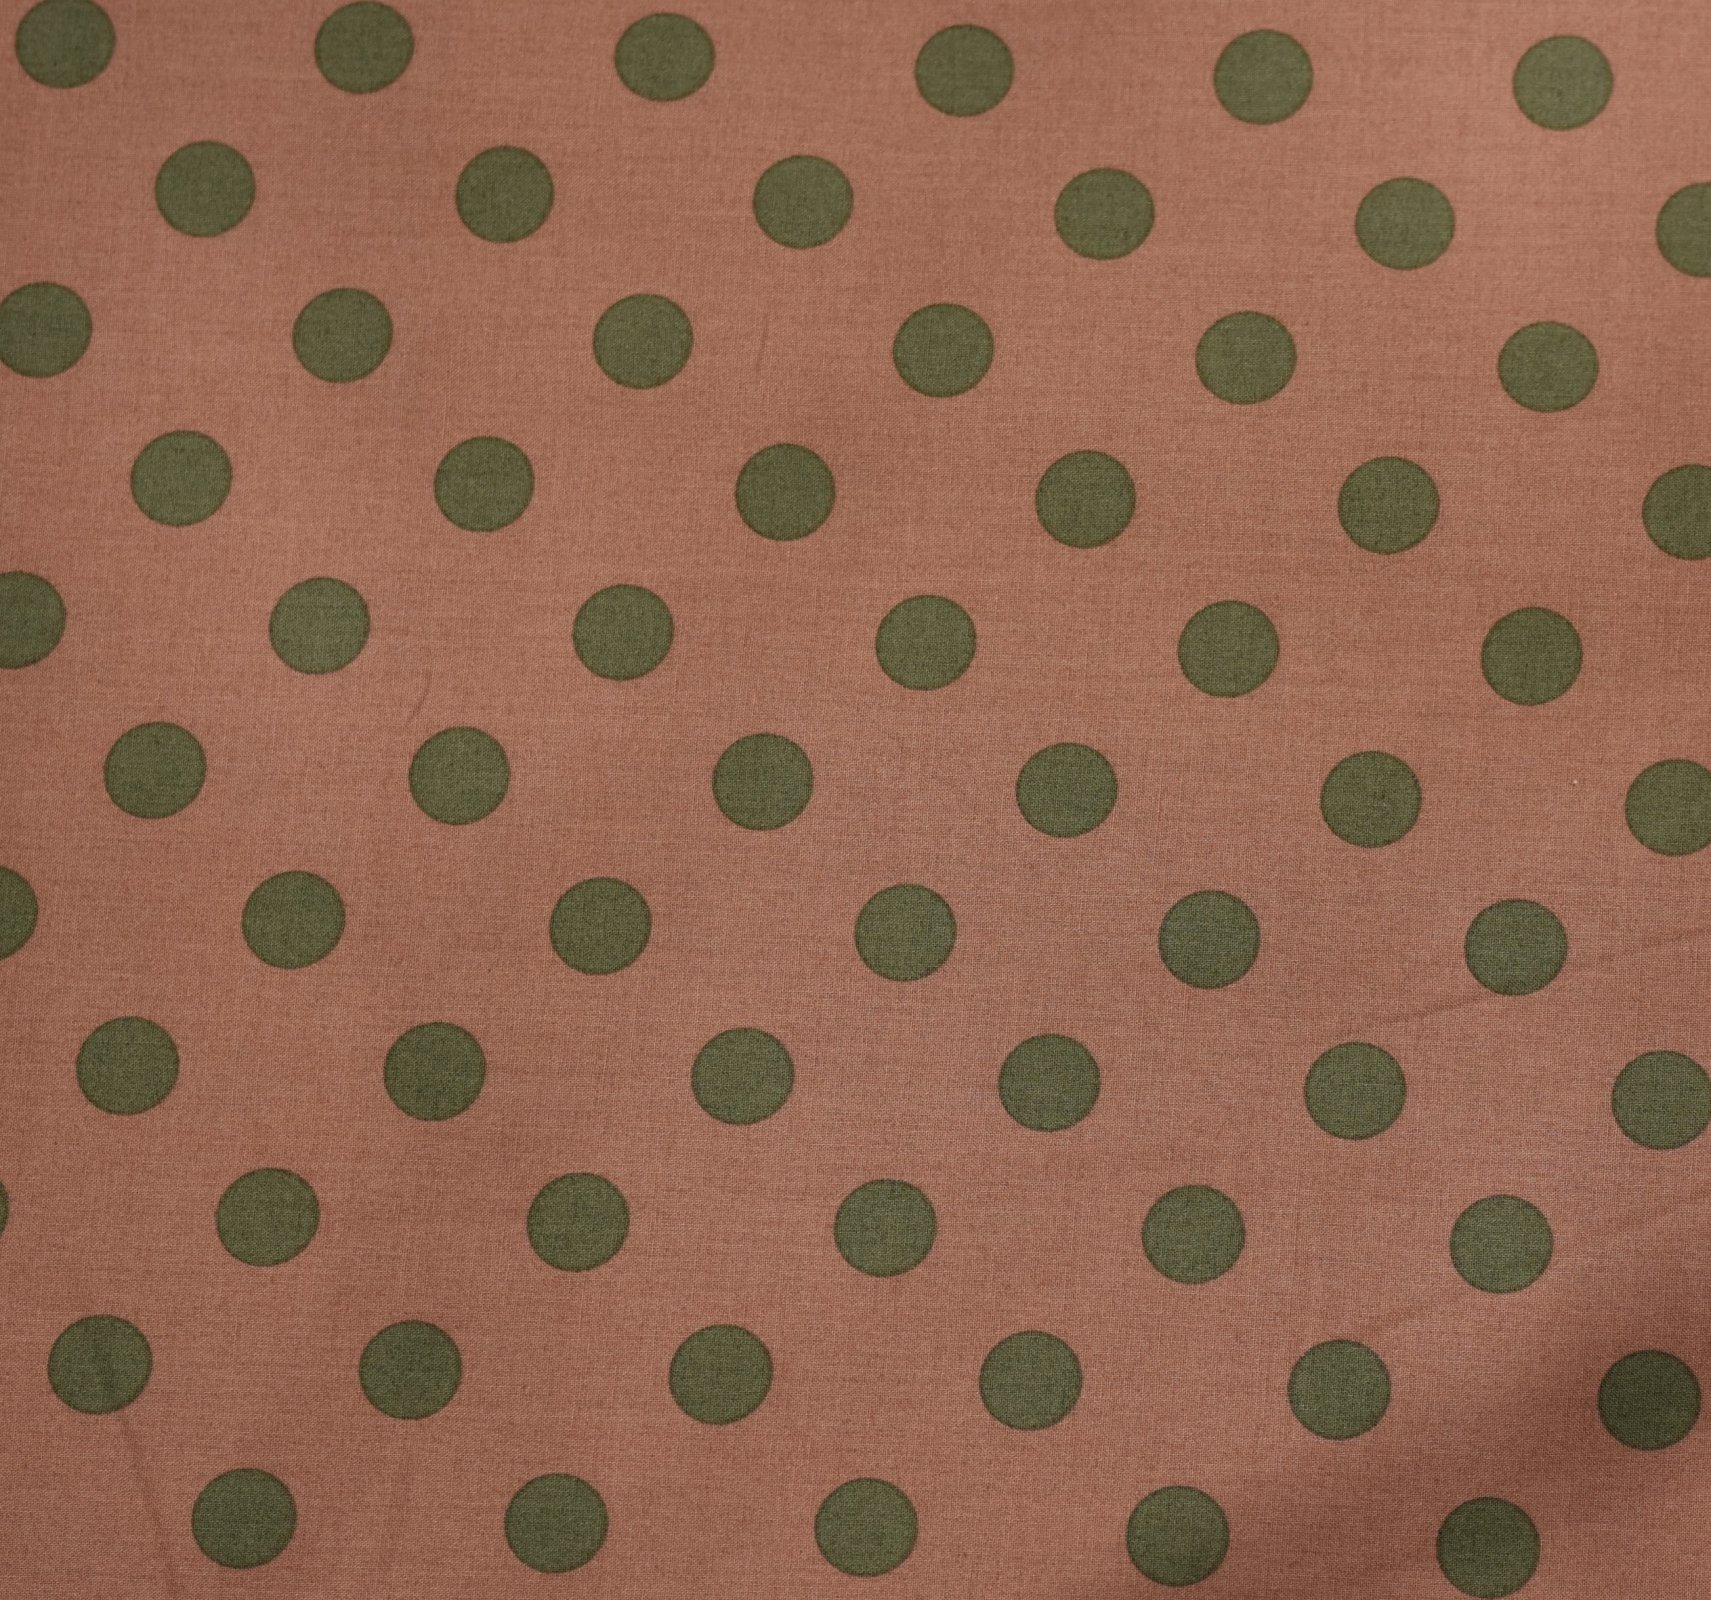 Japanese Fabric - Color Cocktails - Spots - Dusty Rose/Grey